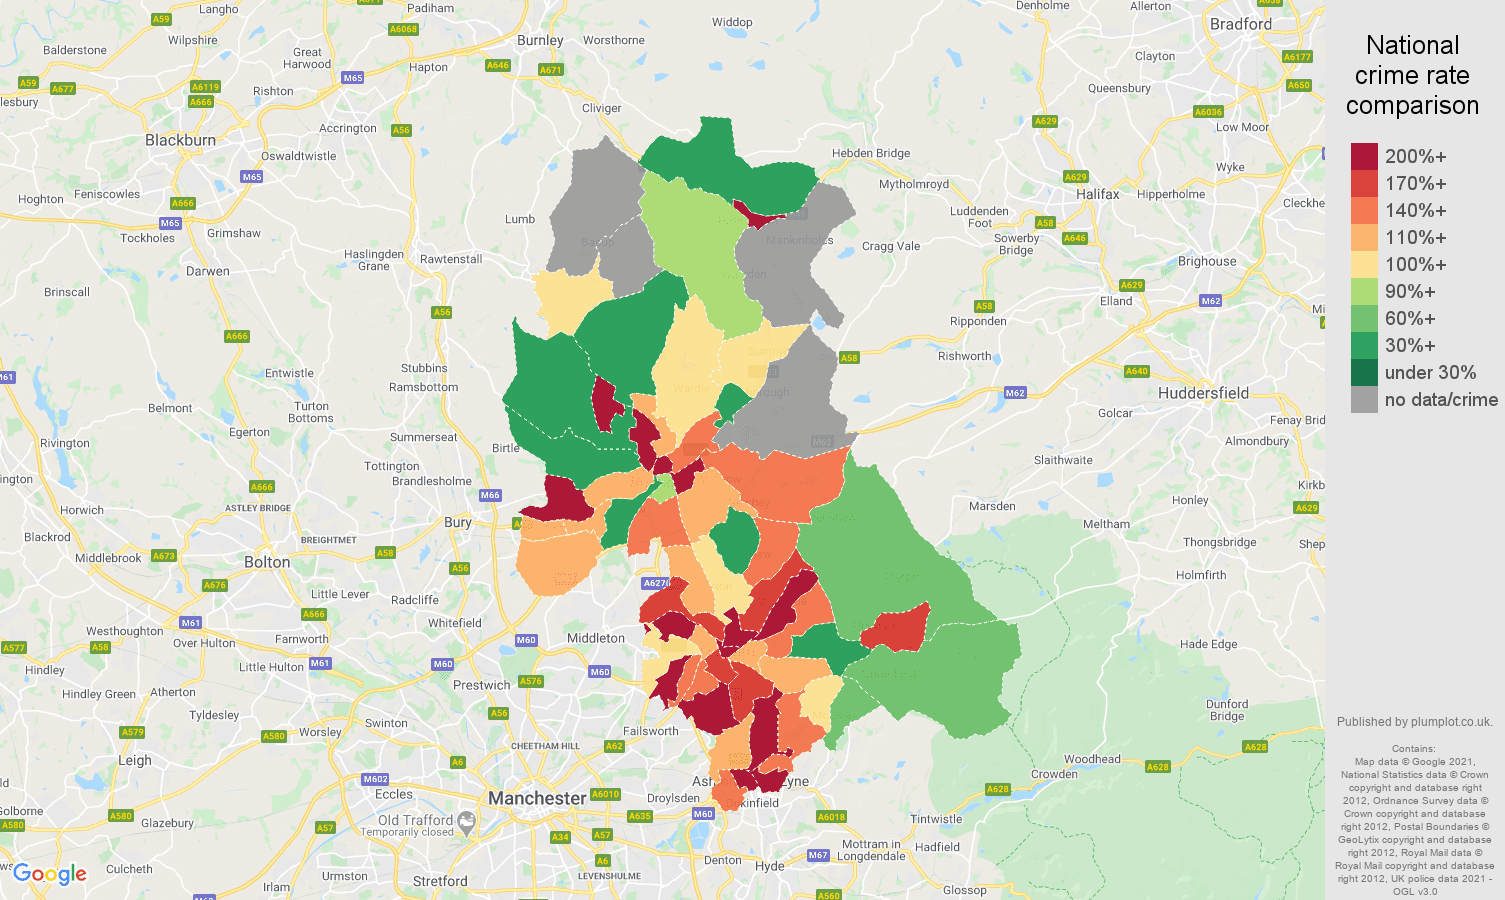 Oldham possession of weapons crime rate comparison map